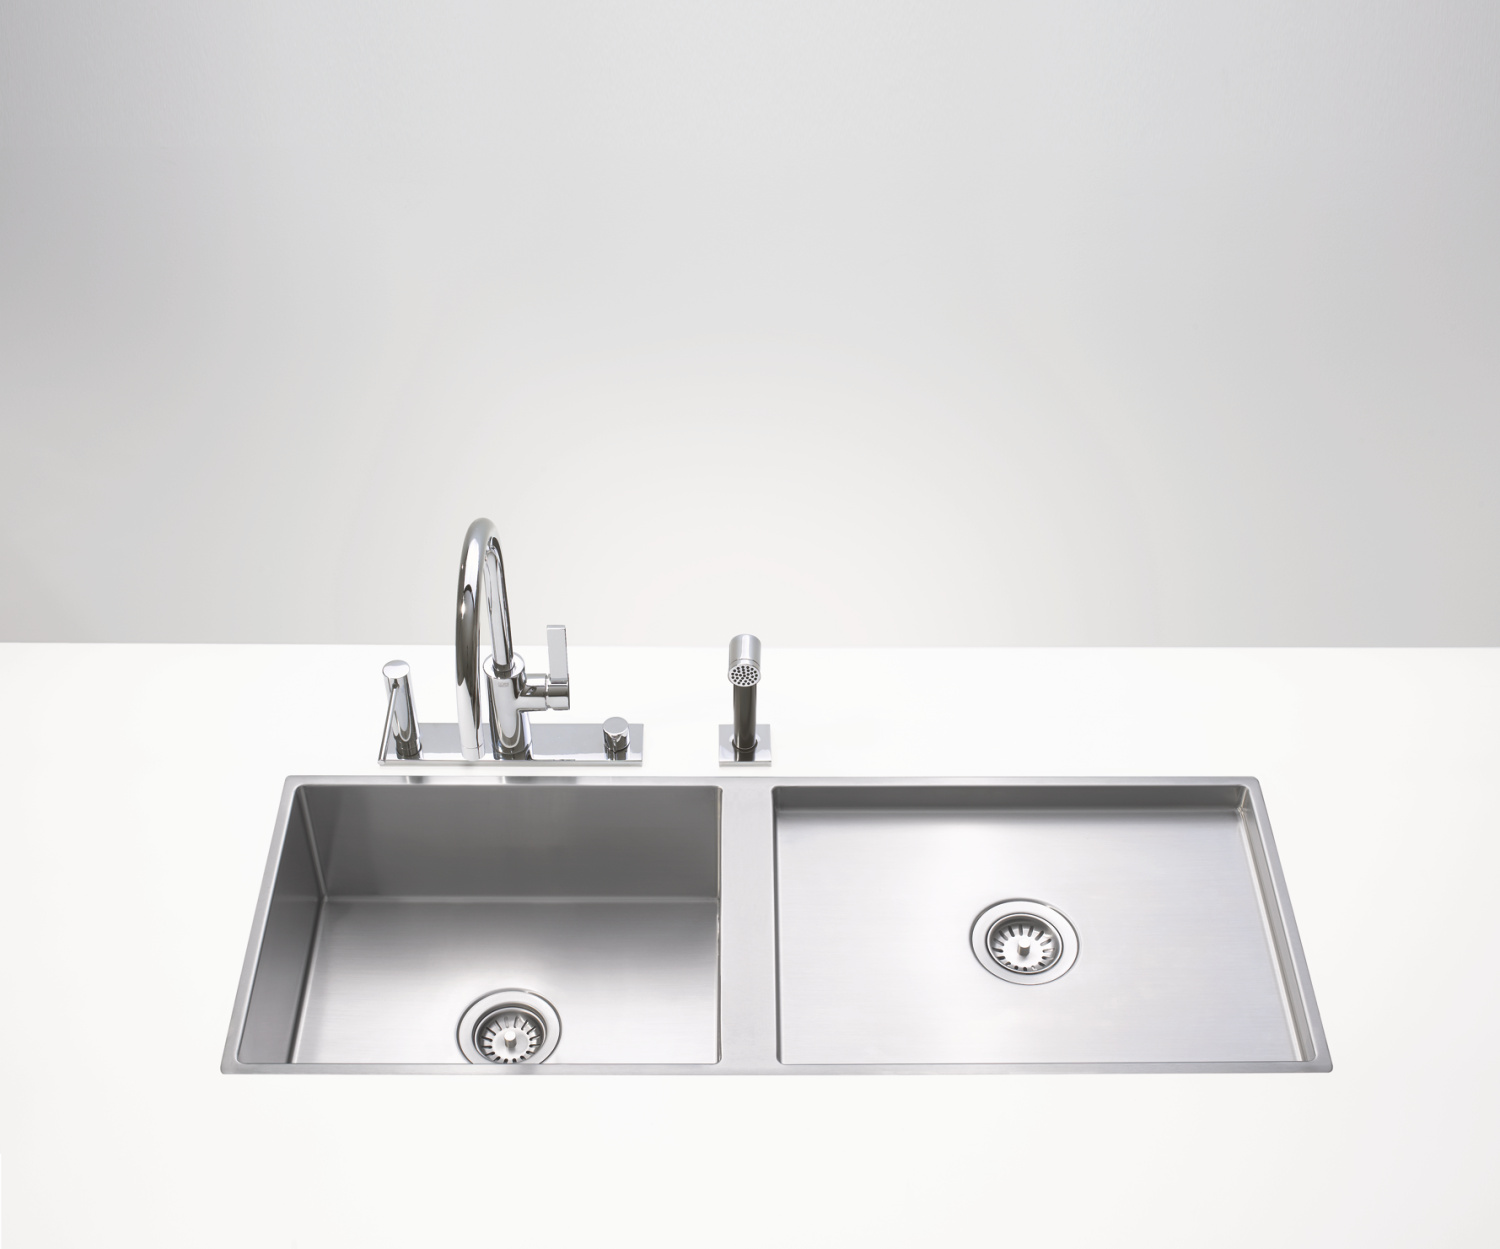 Dual basin - matte stainless steel